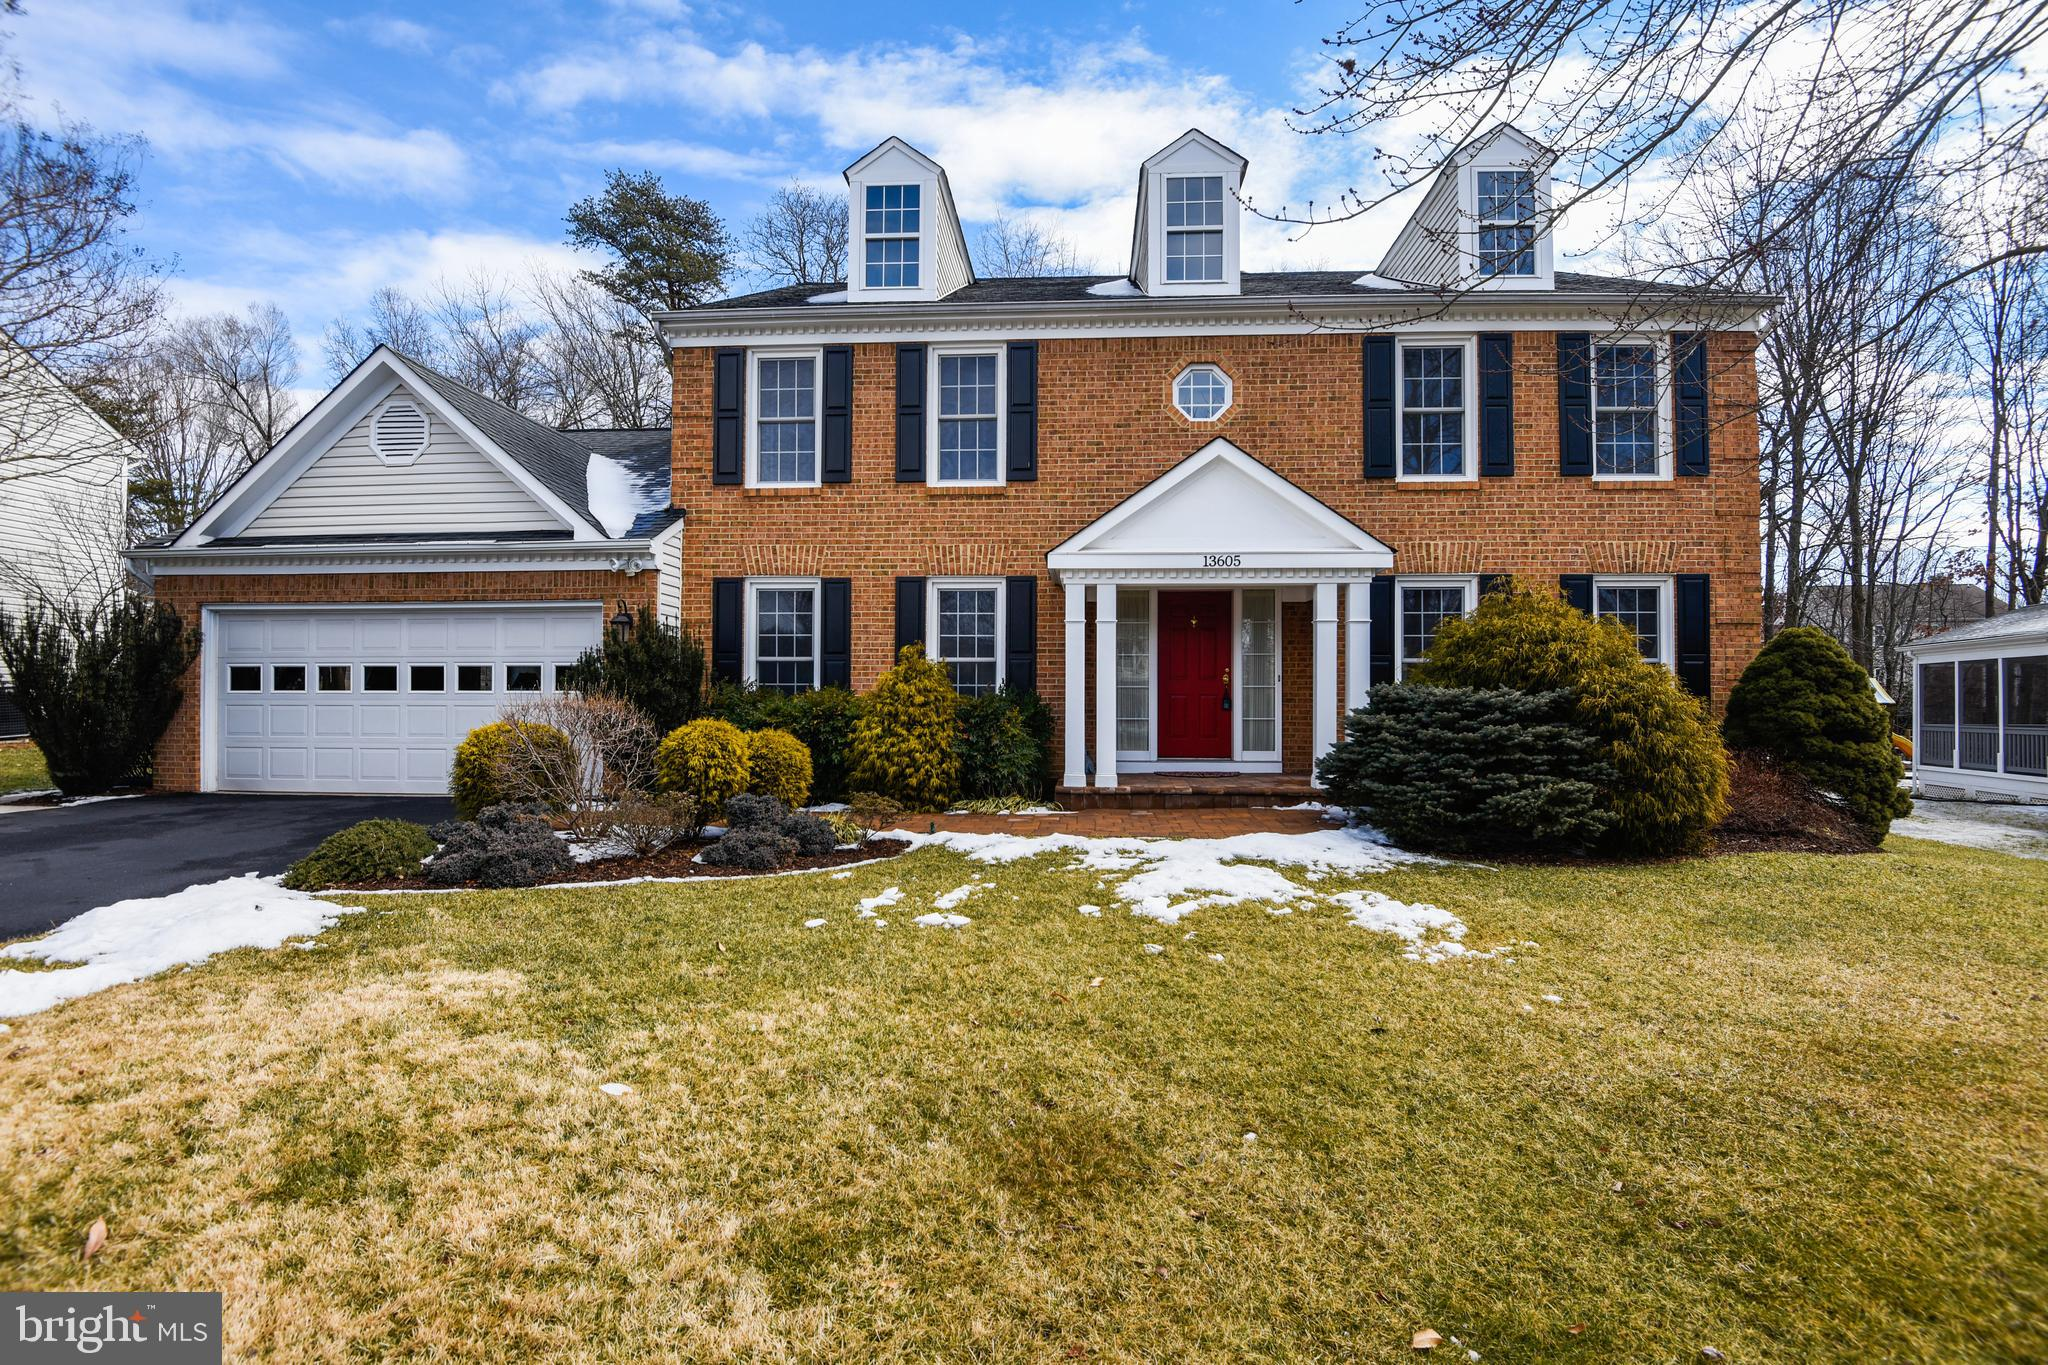 **This 4 bedroom/3.5 bath colonial is located in the desirable Little Rocky Run (LRR) neighborhood.  LRR is a 950 acre master planned community with MANY amenities which can be enjoyed by residents. There are 3 pools, tennis courts, 215 acres of common grounds, 3 rec centers, many trails/paths, sport courts, tot lots & much more! ** This home has been METICULOUSLY maintained & upgraded by the current owners & it had been meticulously maintained & upgraded by the previous owners!  This is one well-love & cared for home!  **The list of improvements is too long to include here - please review the improvements list in the documents section.  **The owners' true passion is landscaping & the result is a gorgeous oasis of a yard!  Even though the yard is not yet in bloom, some photos from last summer should help you imagine how beautiful a spot it will be!  The huge TimberTech deck (2012) has room for multiple seating & entertaining areas & all the landscaping invites one to linger!  **Once you pull yourself away from the premium yard, the interior will not disappoint.  As you enter, you are greeted by rich hardwood floors throughout most of the first floor (added in 2013), light filled rooms & a wonderful floor plan.  The updated kitchen is open to the family room with a special fireplace.  The gas logs were replaced with Empire Comfort Systems Vented/Vent-Free Burner Logs (2015) so you can operate it with the vent closed for heat generation or with the vent open when you want the fire but not the heat!  **The upstairs, accessed by a stick-built wood staircase w/white risers (2014), offers 4 bedrooms & 2 baths.  The primary bedroom is generously sized & has a walk-in closet.  The primary bath was completely remodeled (2014) & is simply beautiful with a soaking tub, spectacular tile work & a shower with a frameless door.  **The freshly carpeted lower level offers a rec room, workout area & a den with a full bath & closet.  **You might also appreciate the convenience of the location.  The neighborhood is close to I-66, Rt 28 & 29 and the Fairfax County Parkway.  There is plenty of entertainment nearby, too – shopping, dining, & golf (Twin Lakes Golf Course & the Virginia Golf Center & Academy), to name just a few close options.....